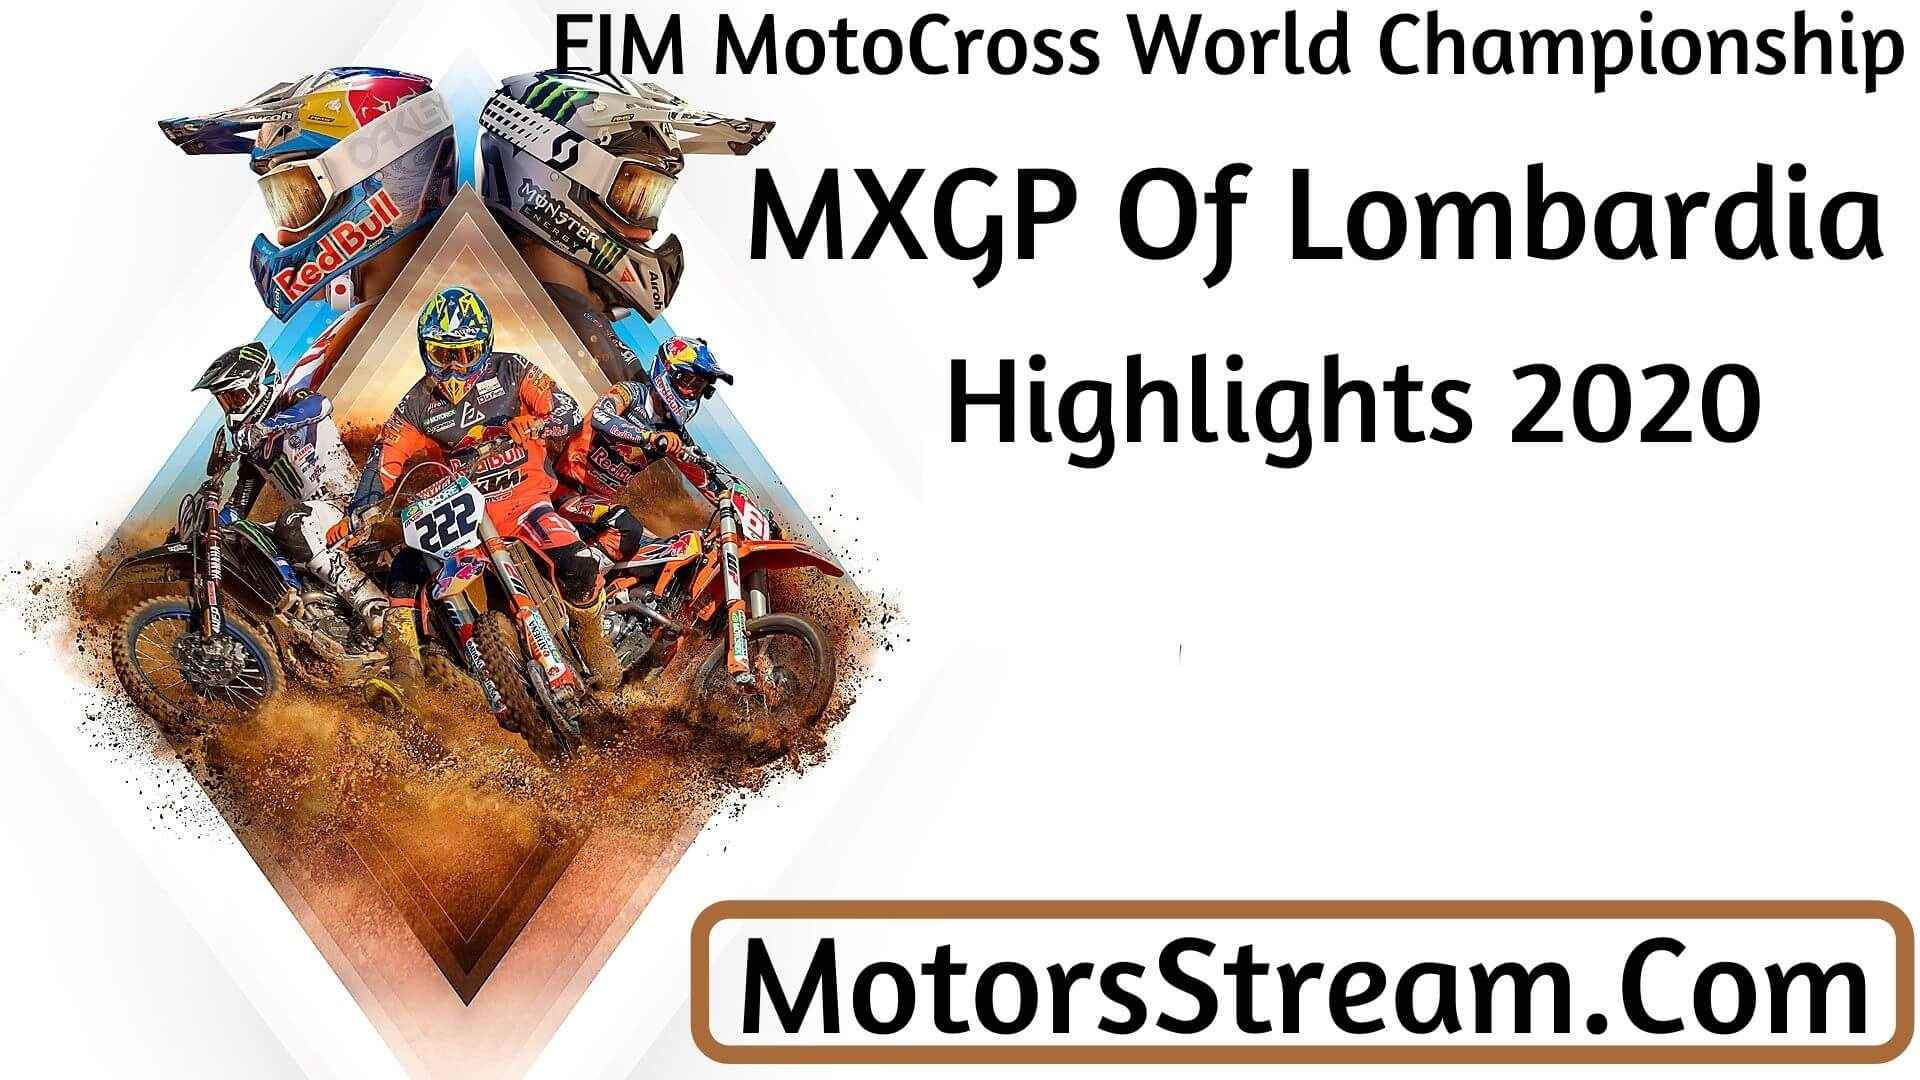 MXGP Of Lombardia Highlights 2020